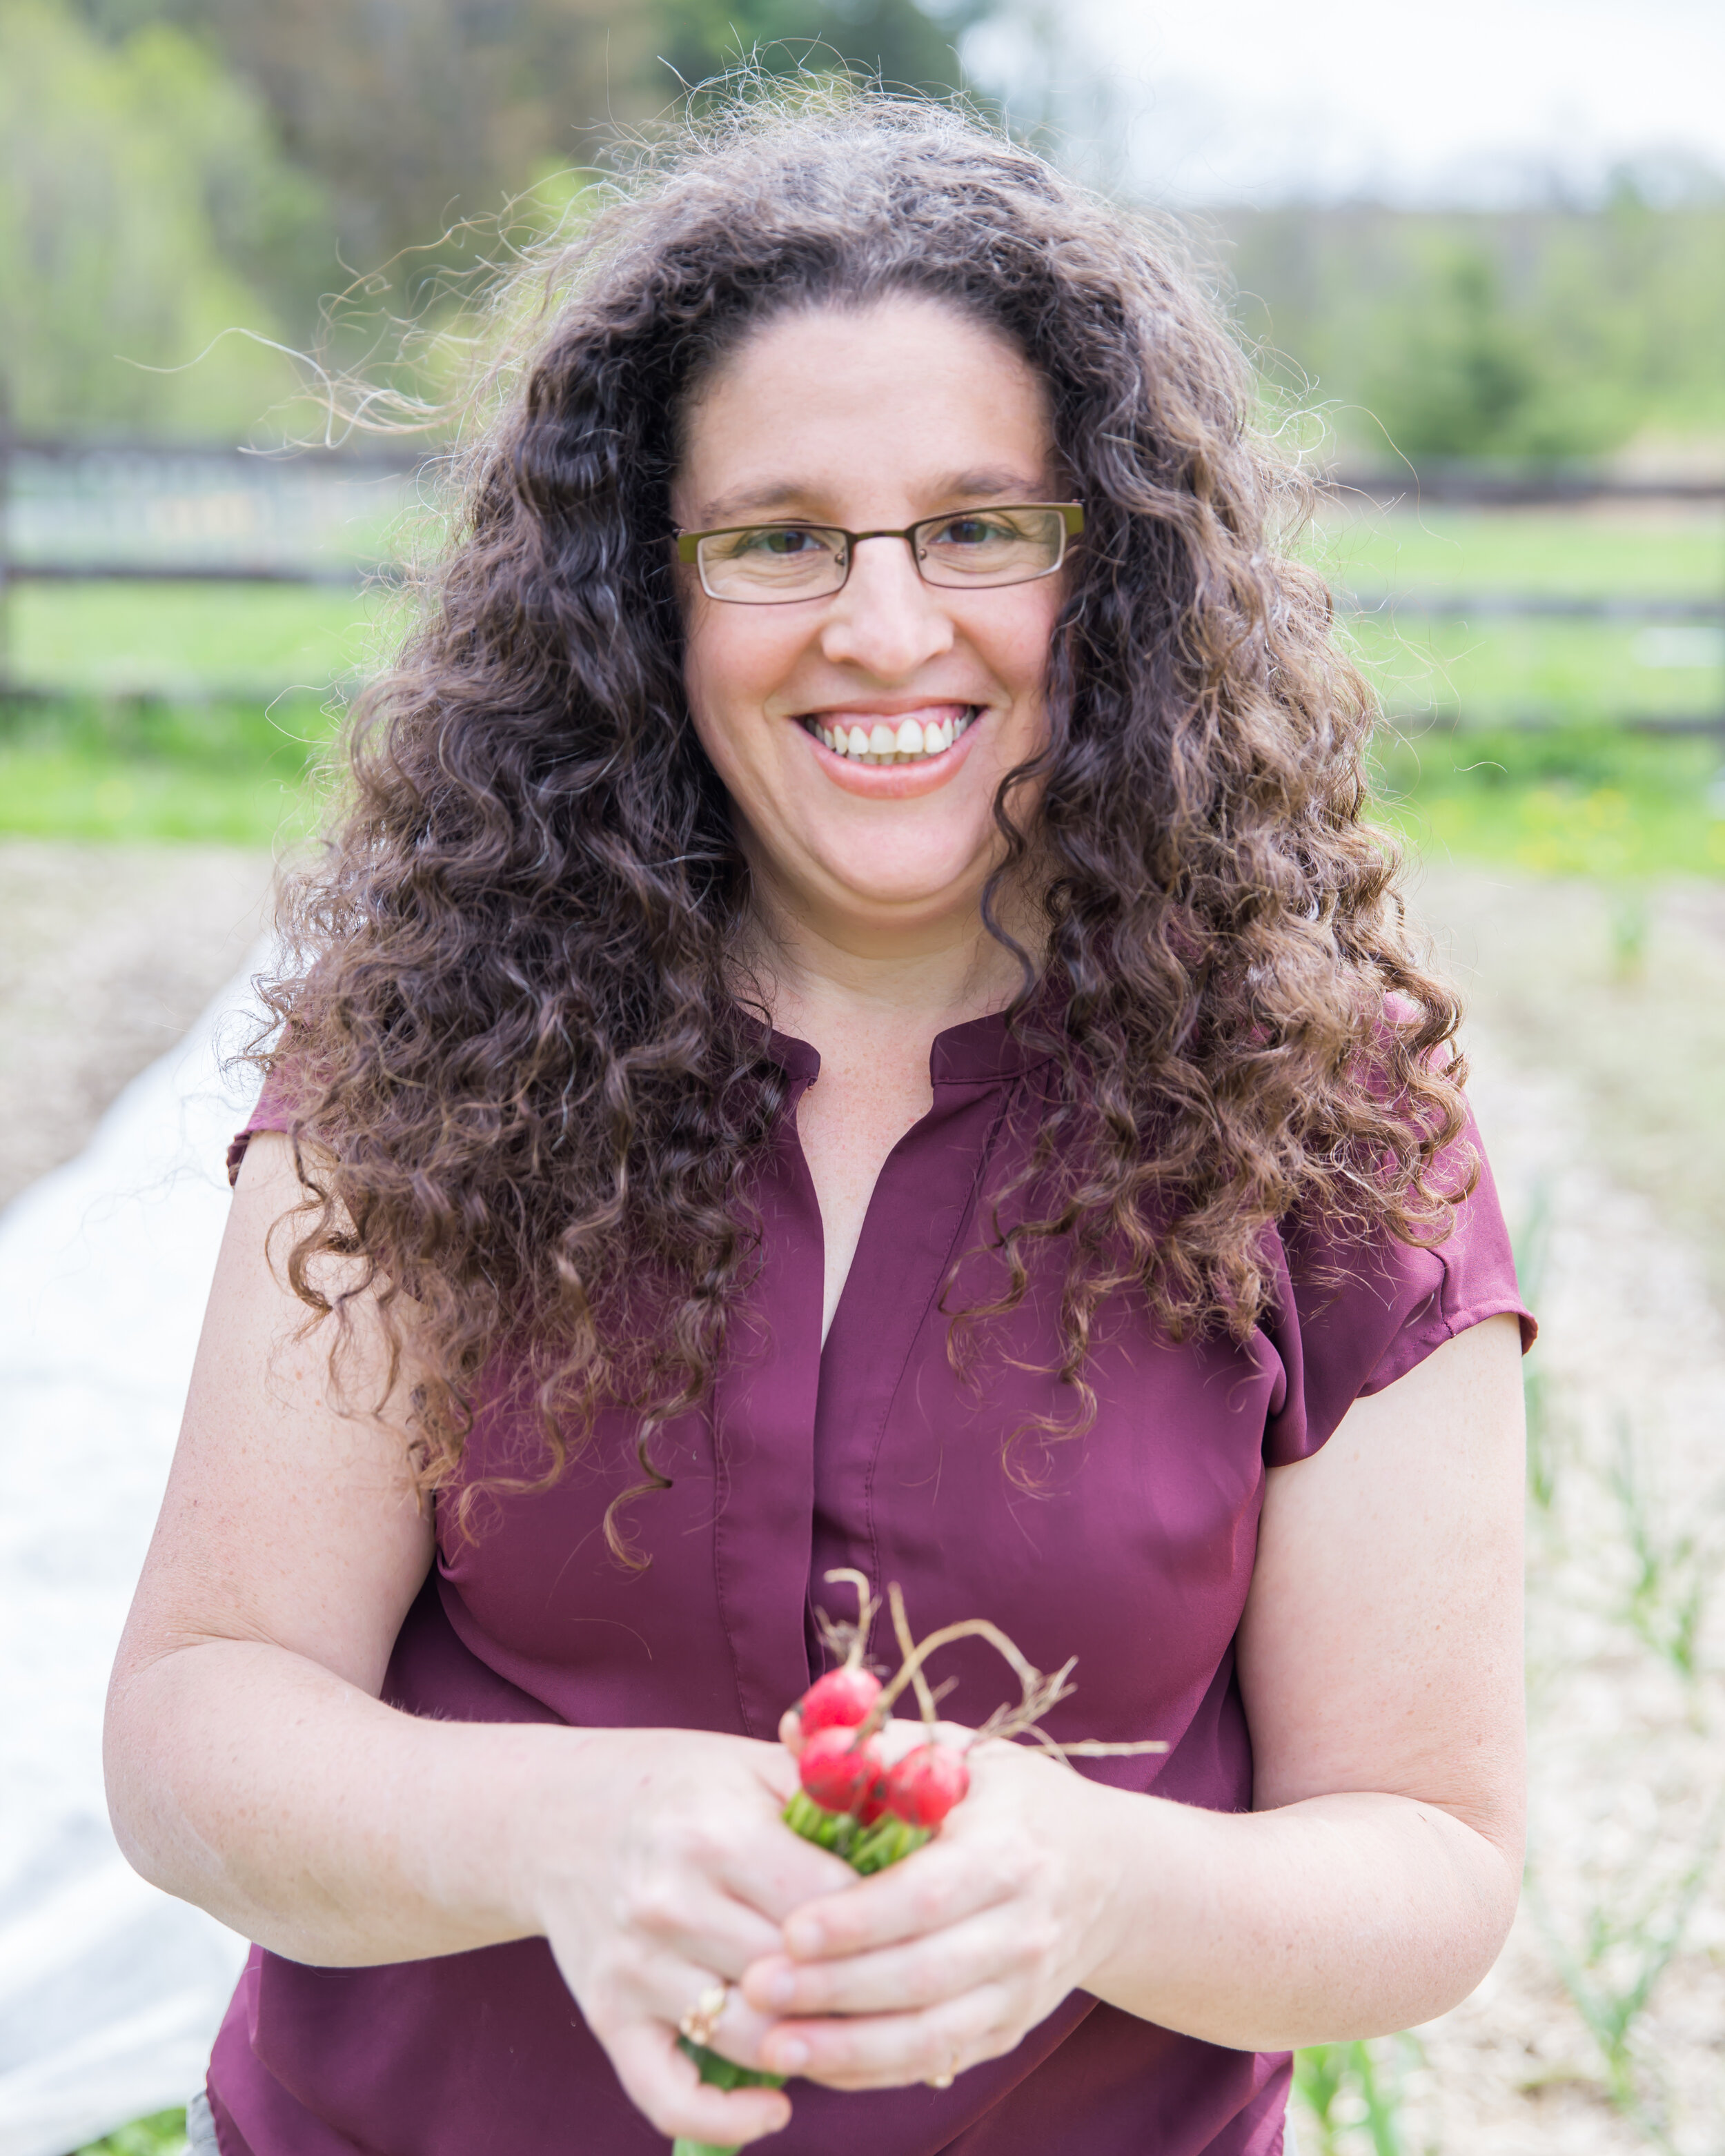 """""""Based on past photo shoots, I had anxiety but you made it feel easy and comfortable, not only fun. The way you worked with the light in the seasons was totally magic. The pictures are so versatile for my two businesses: my farm and my coaching business, and I love that."""" – Missy Singer DuMars of  Crown Hill Farm  and  SpiritBizPeople ."""